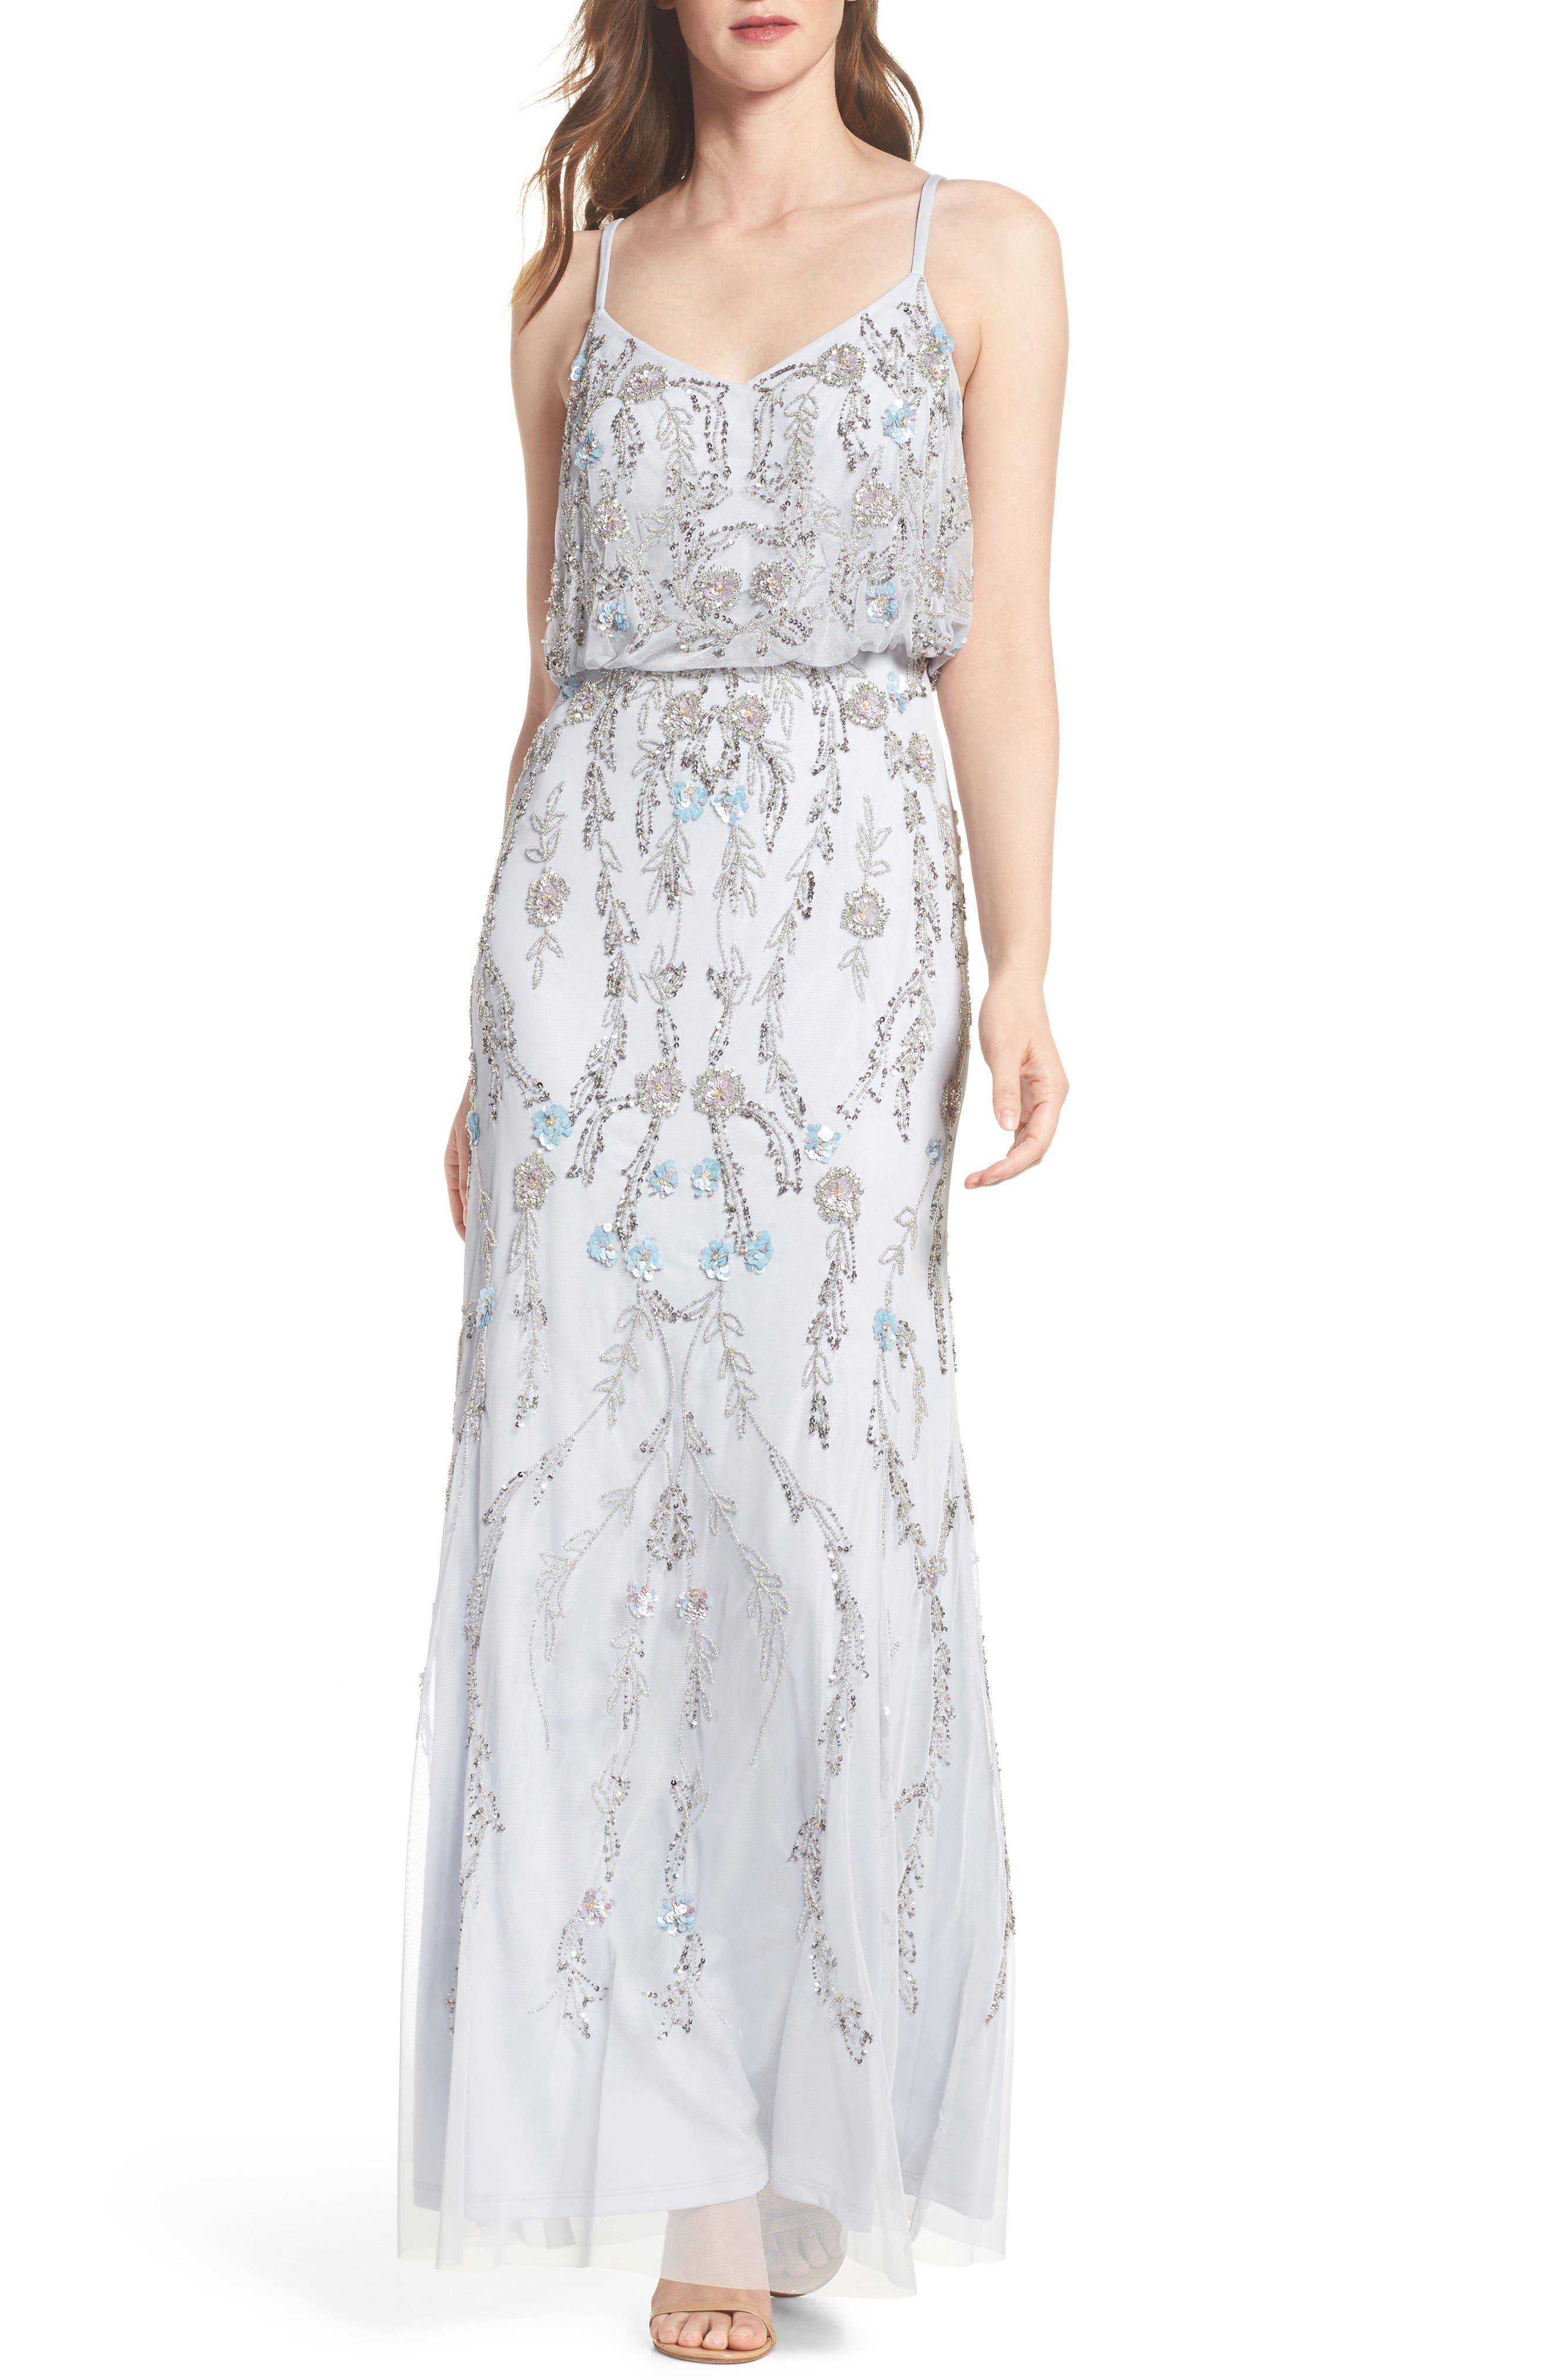 Adrianna Papell 2018 Prom Dresses | Nordstrom